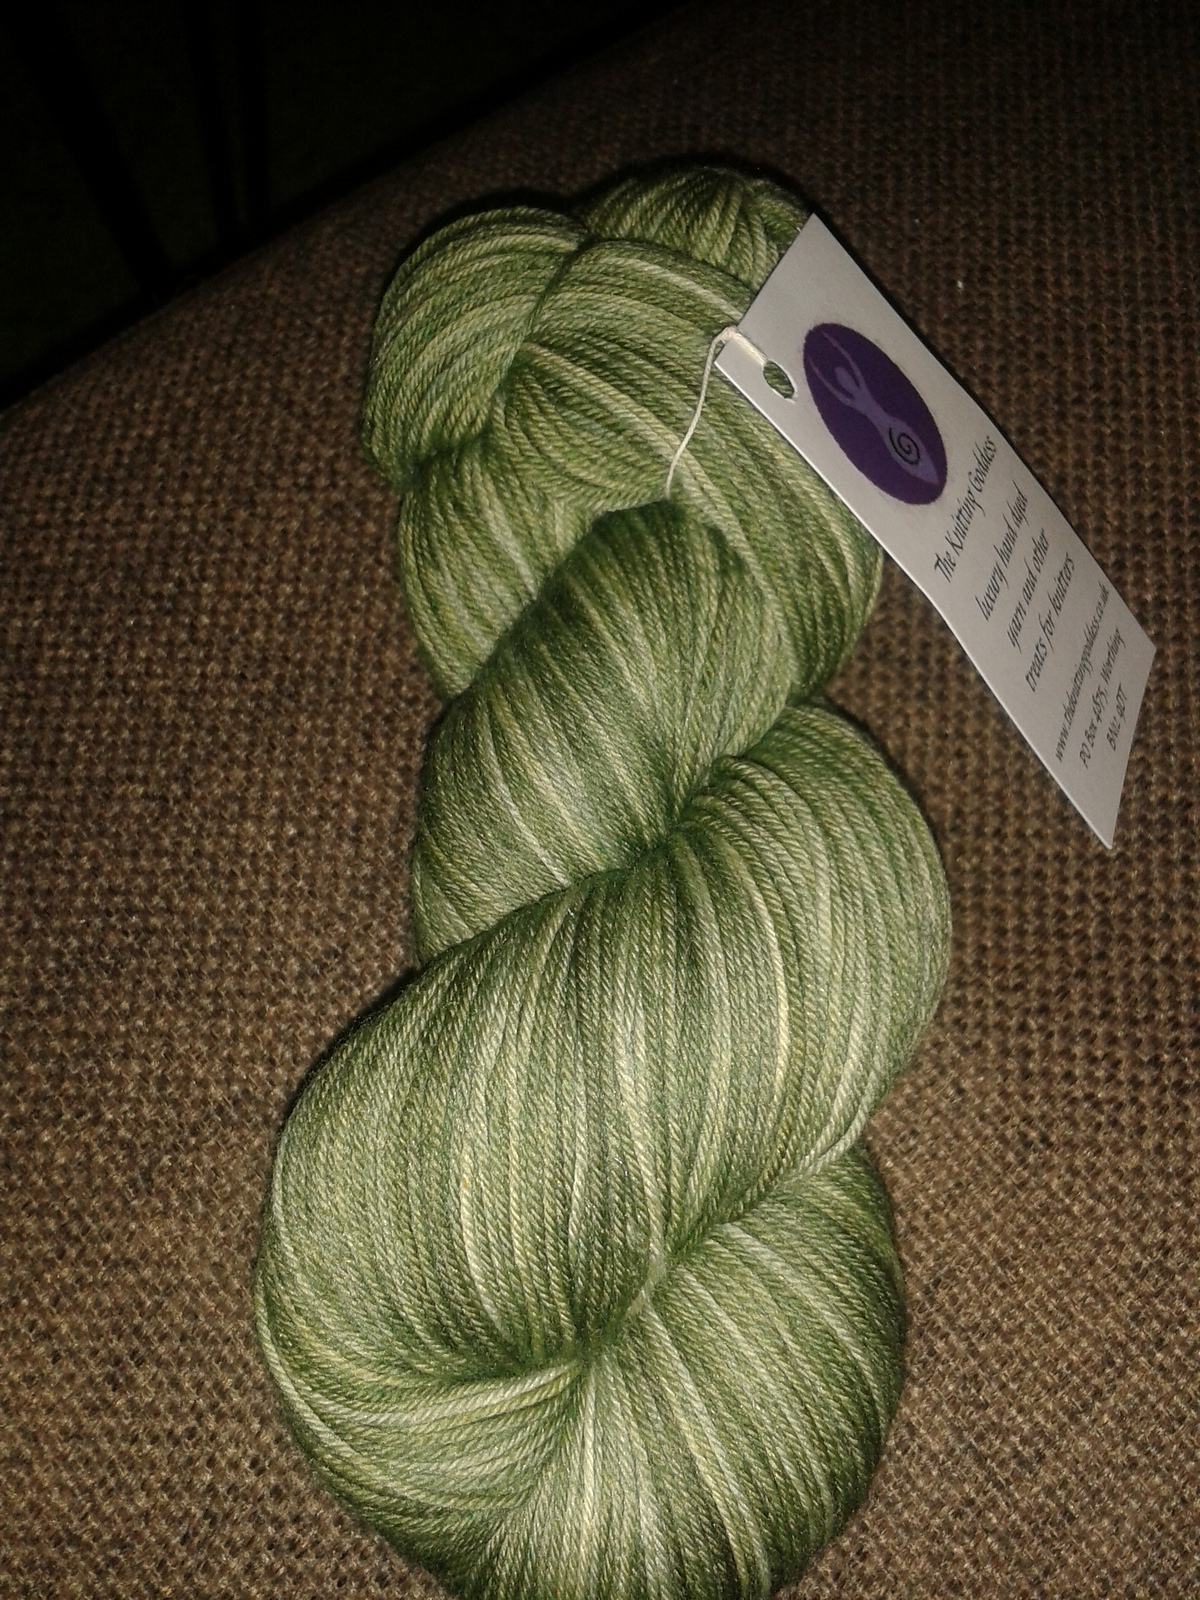 Jenny\'s blog on knitting: First FO of the year (plus more spoilers!)